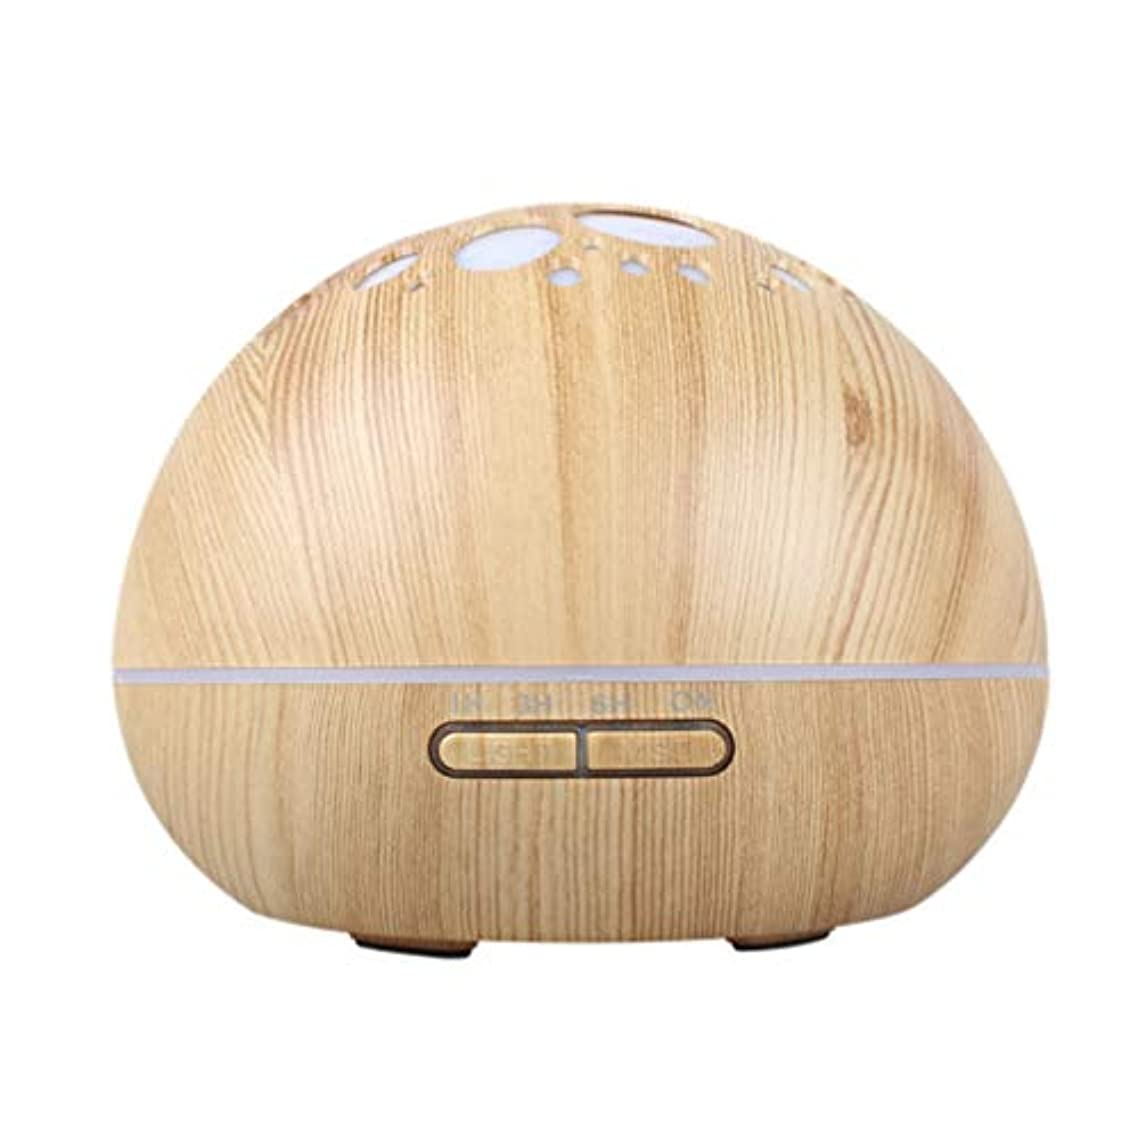 鷹老人純度Uonlytech 1pc Aromatherapy Diffuser Durable High Quality Mute Essential Oil Diffuser Humidifier for Bedroom Office